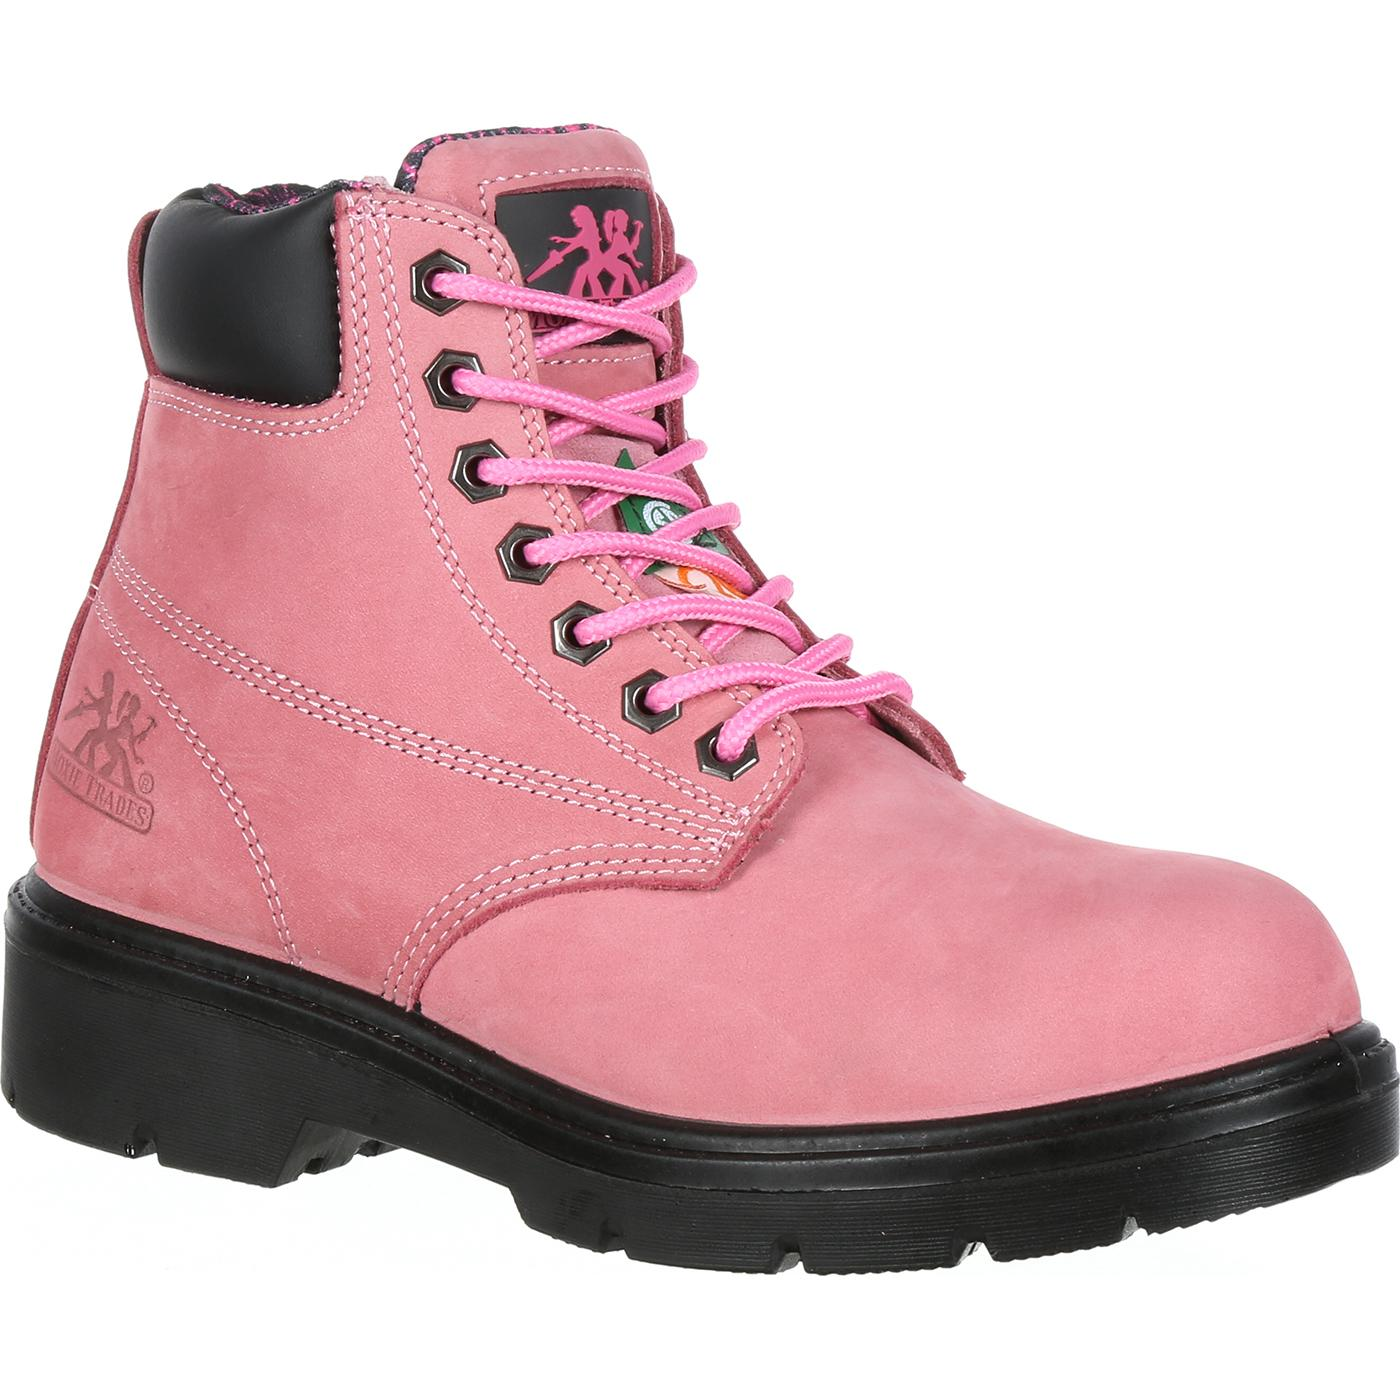 Moxie Trades Women's Steel Toe CSA-Approved PR Work Boot